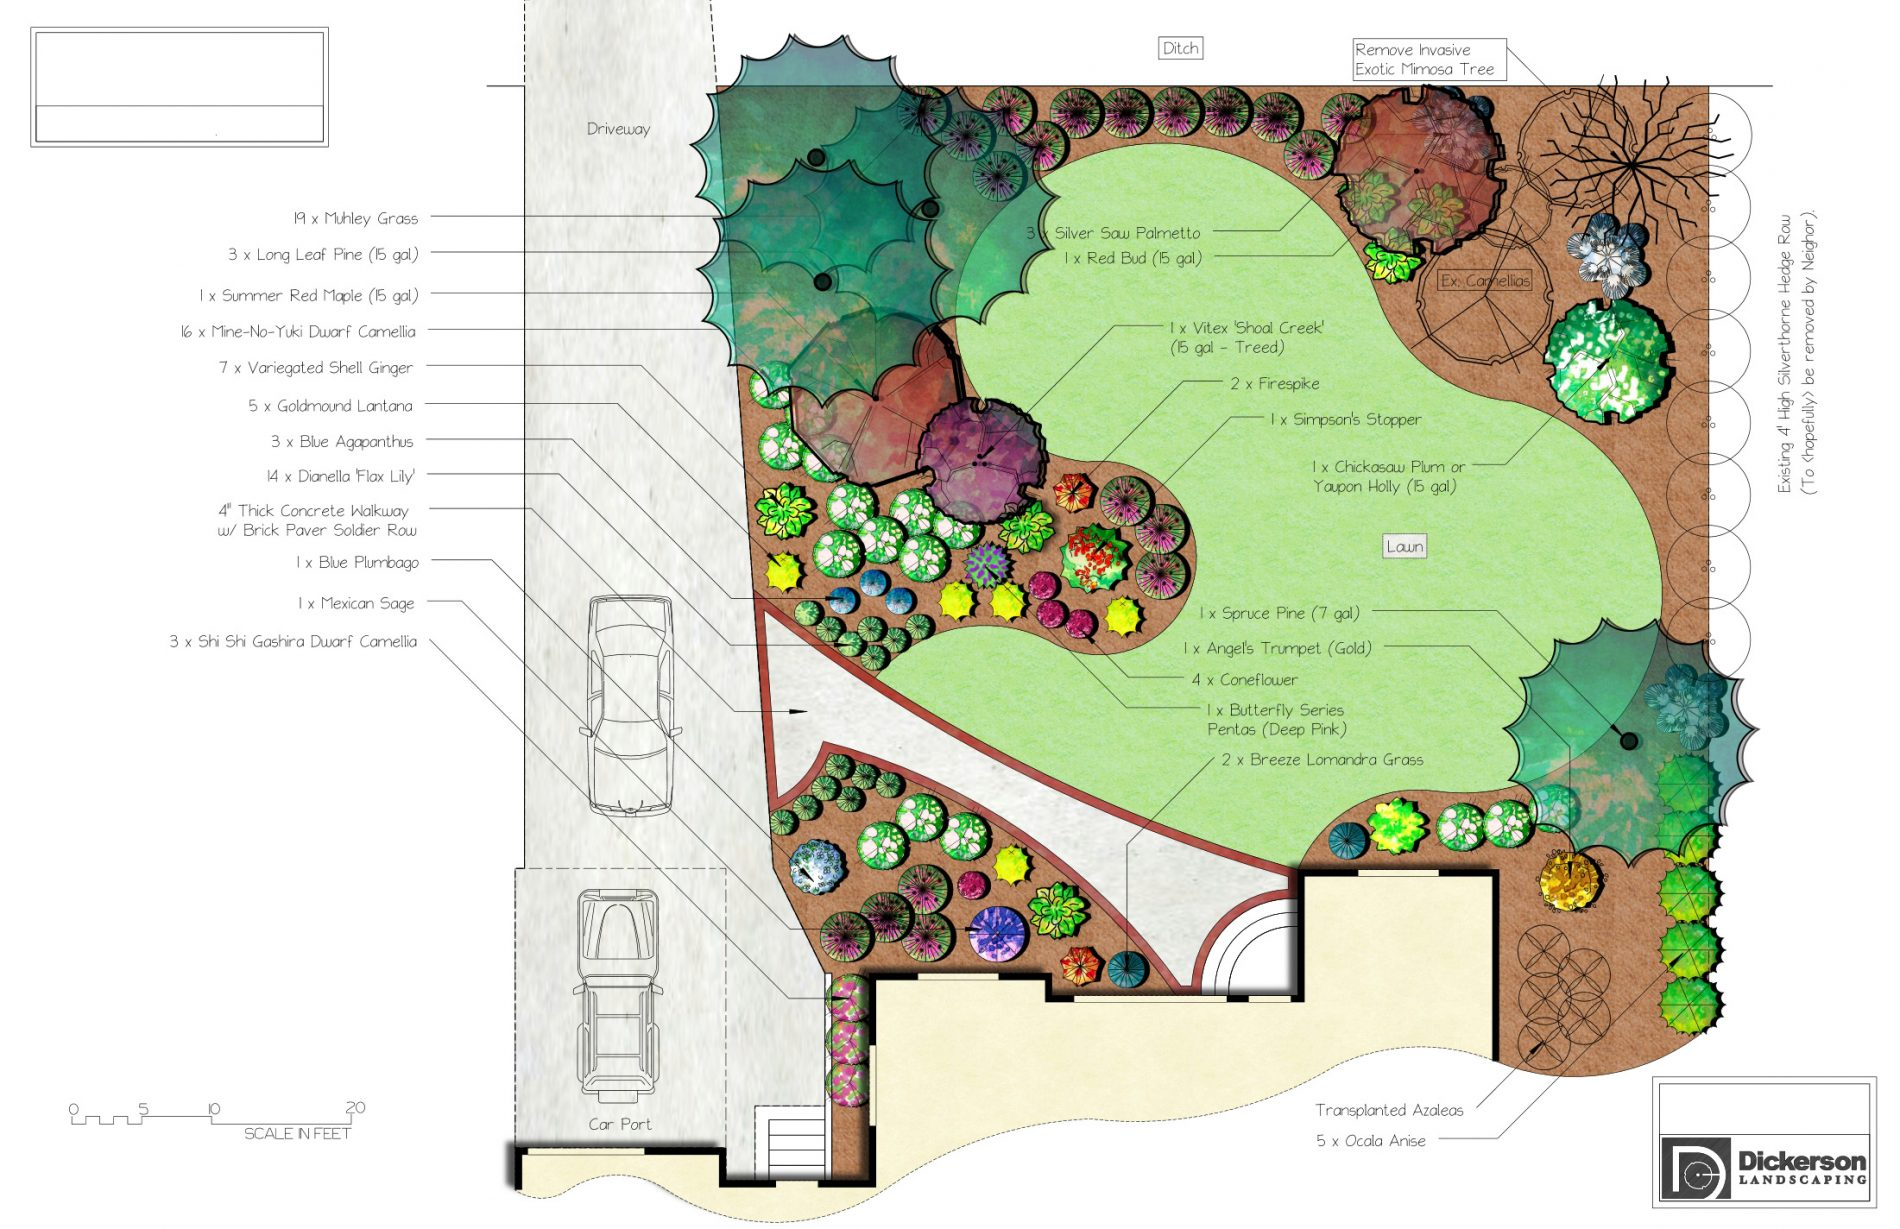 State Of The Art Design Plans Dickerson Landscaping